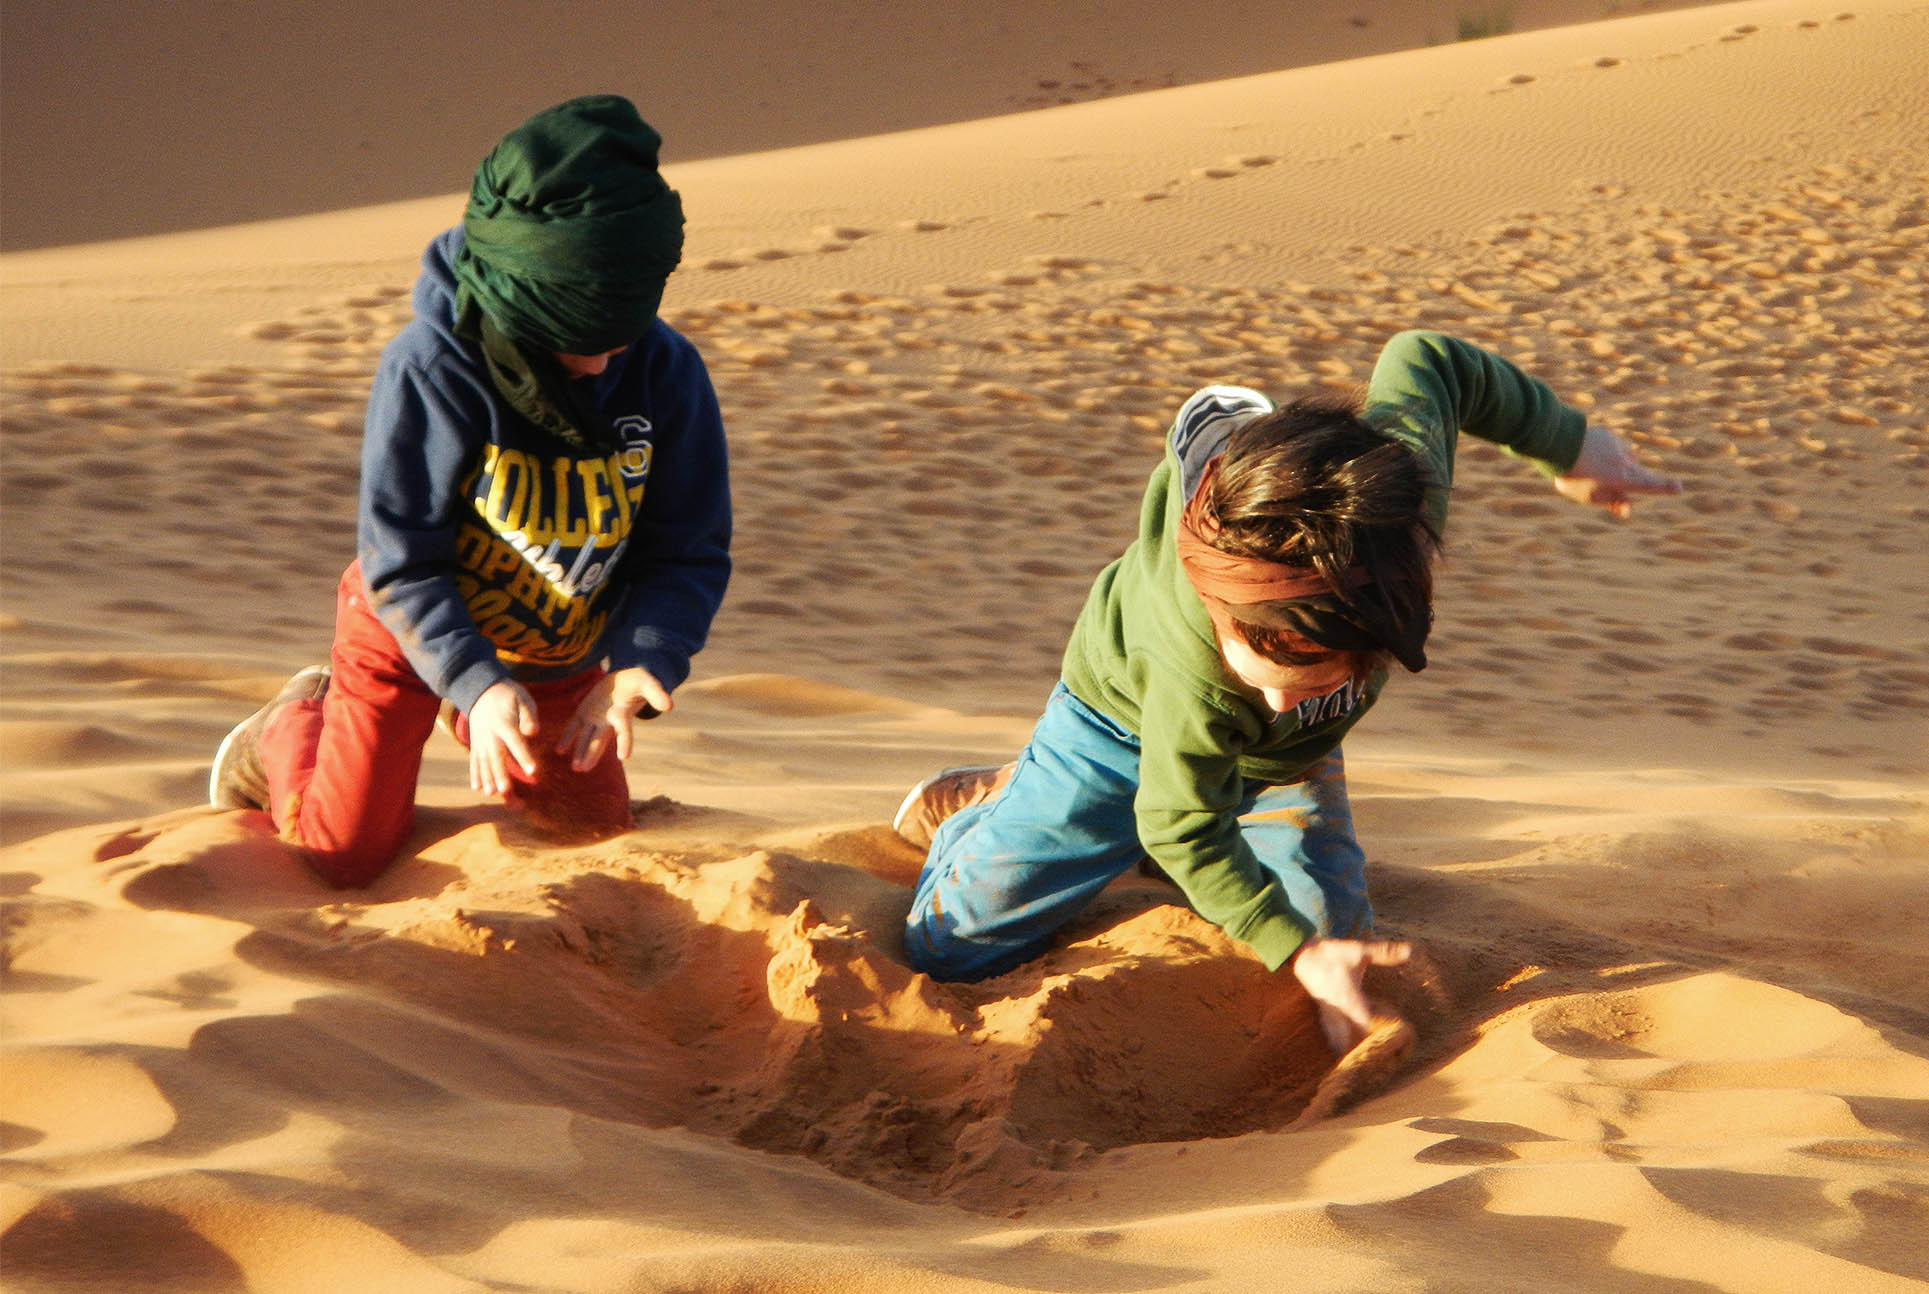 children playing in the sand dunes of moroccan desert, Morocco